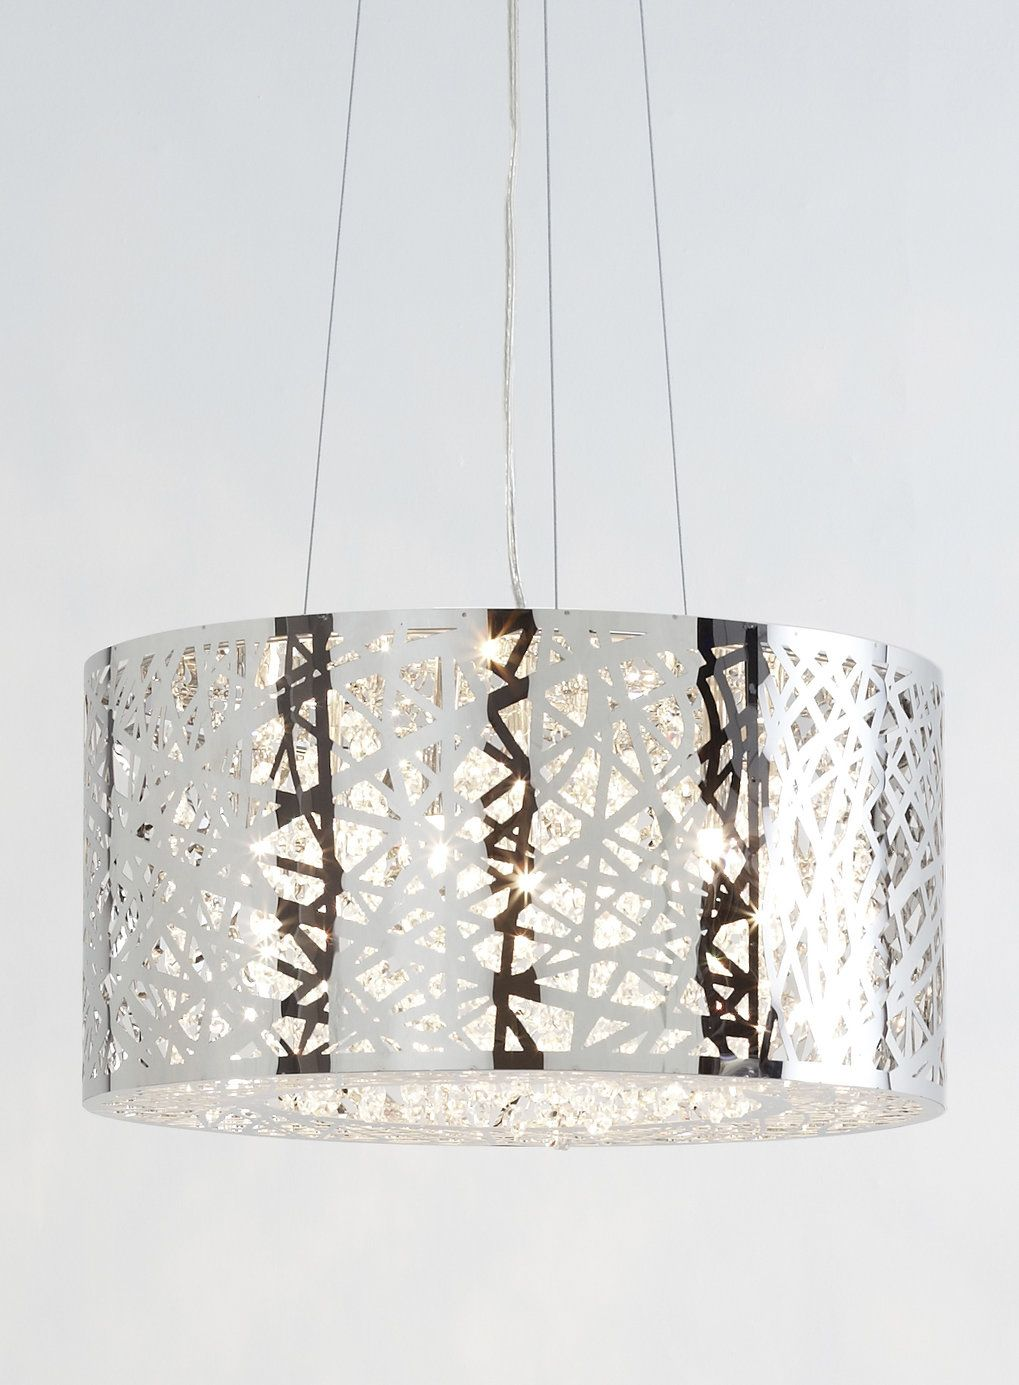 Photo 2 of jena chandelier pendant light for the home pinterest photo 2 of jena chandelier pendant light arubaitofo Image collections